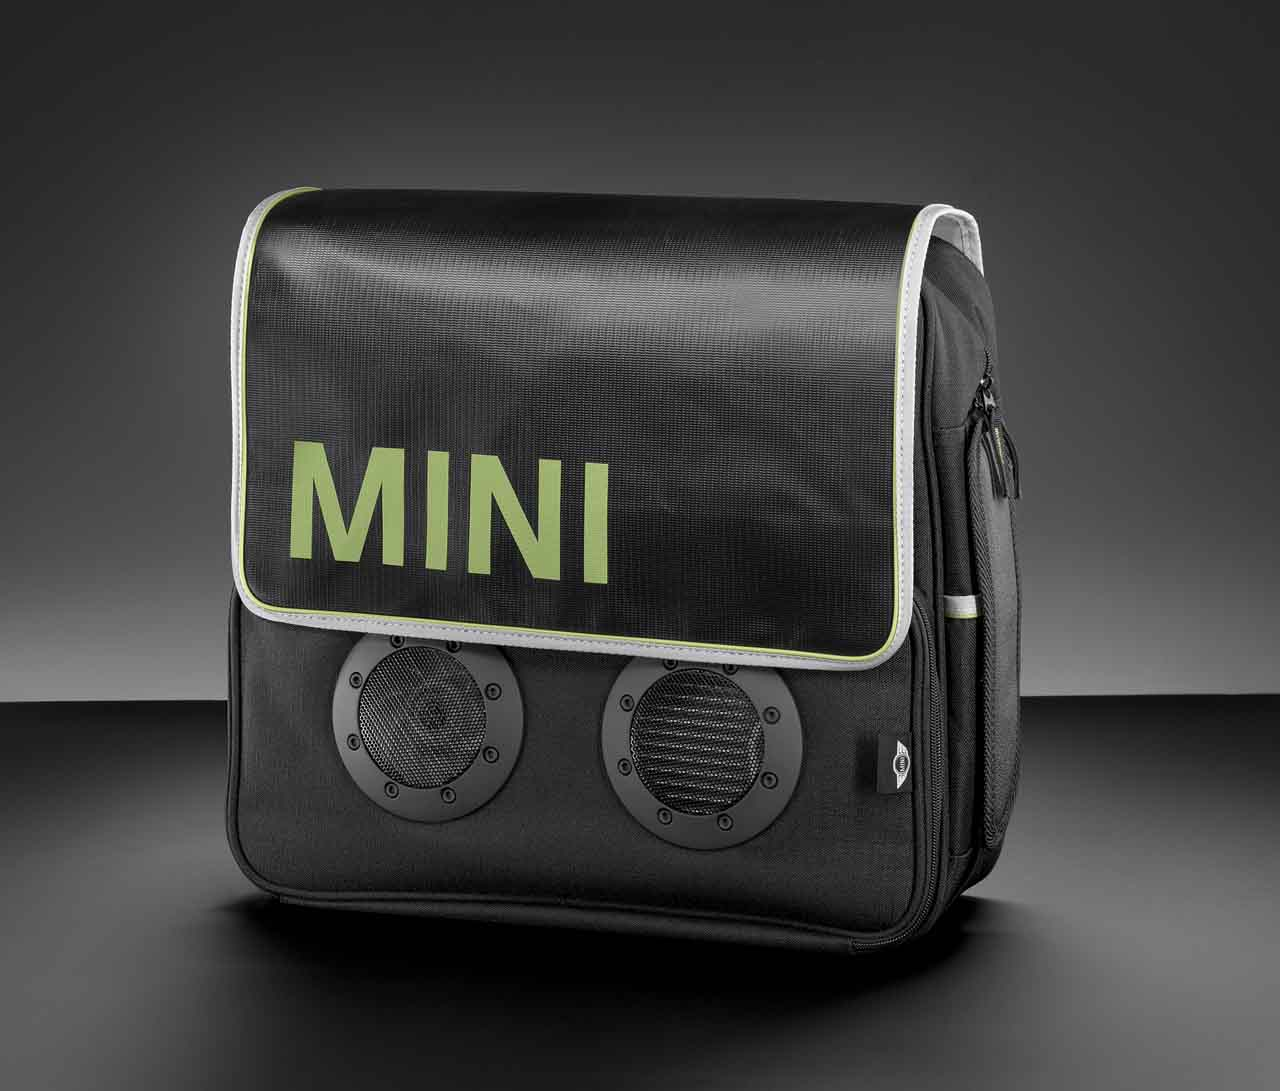 hight resolution of mini genuine in car portable electric cool bag box 82290432493